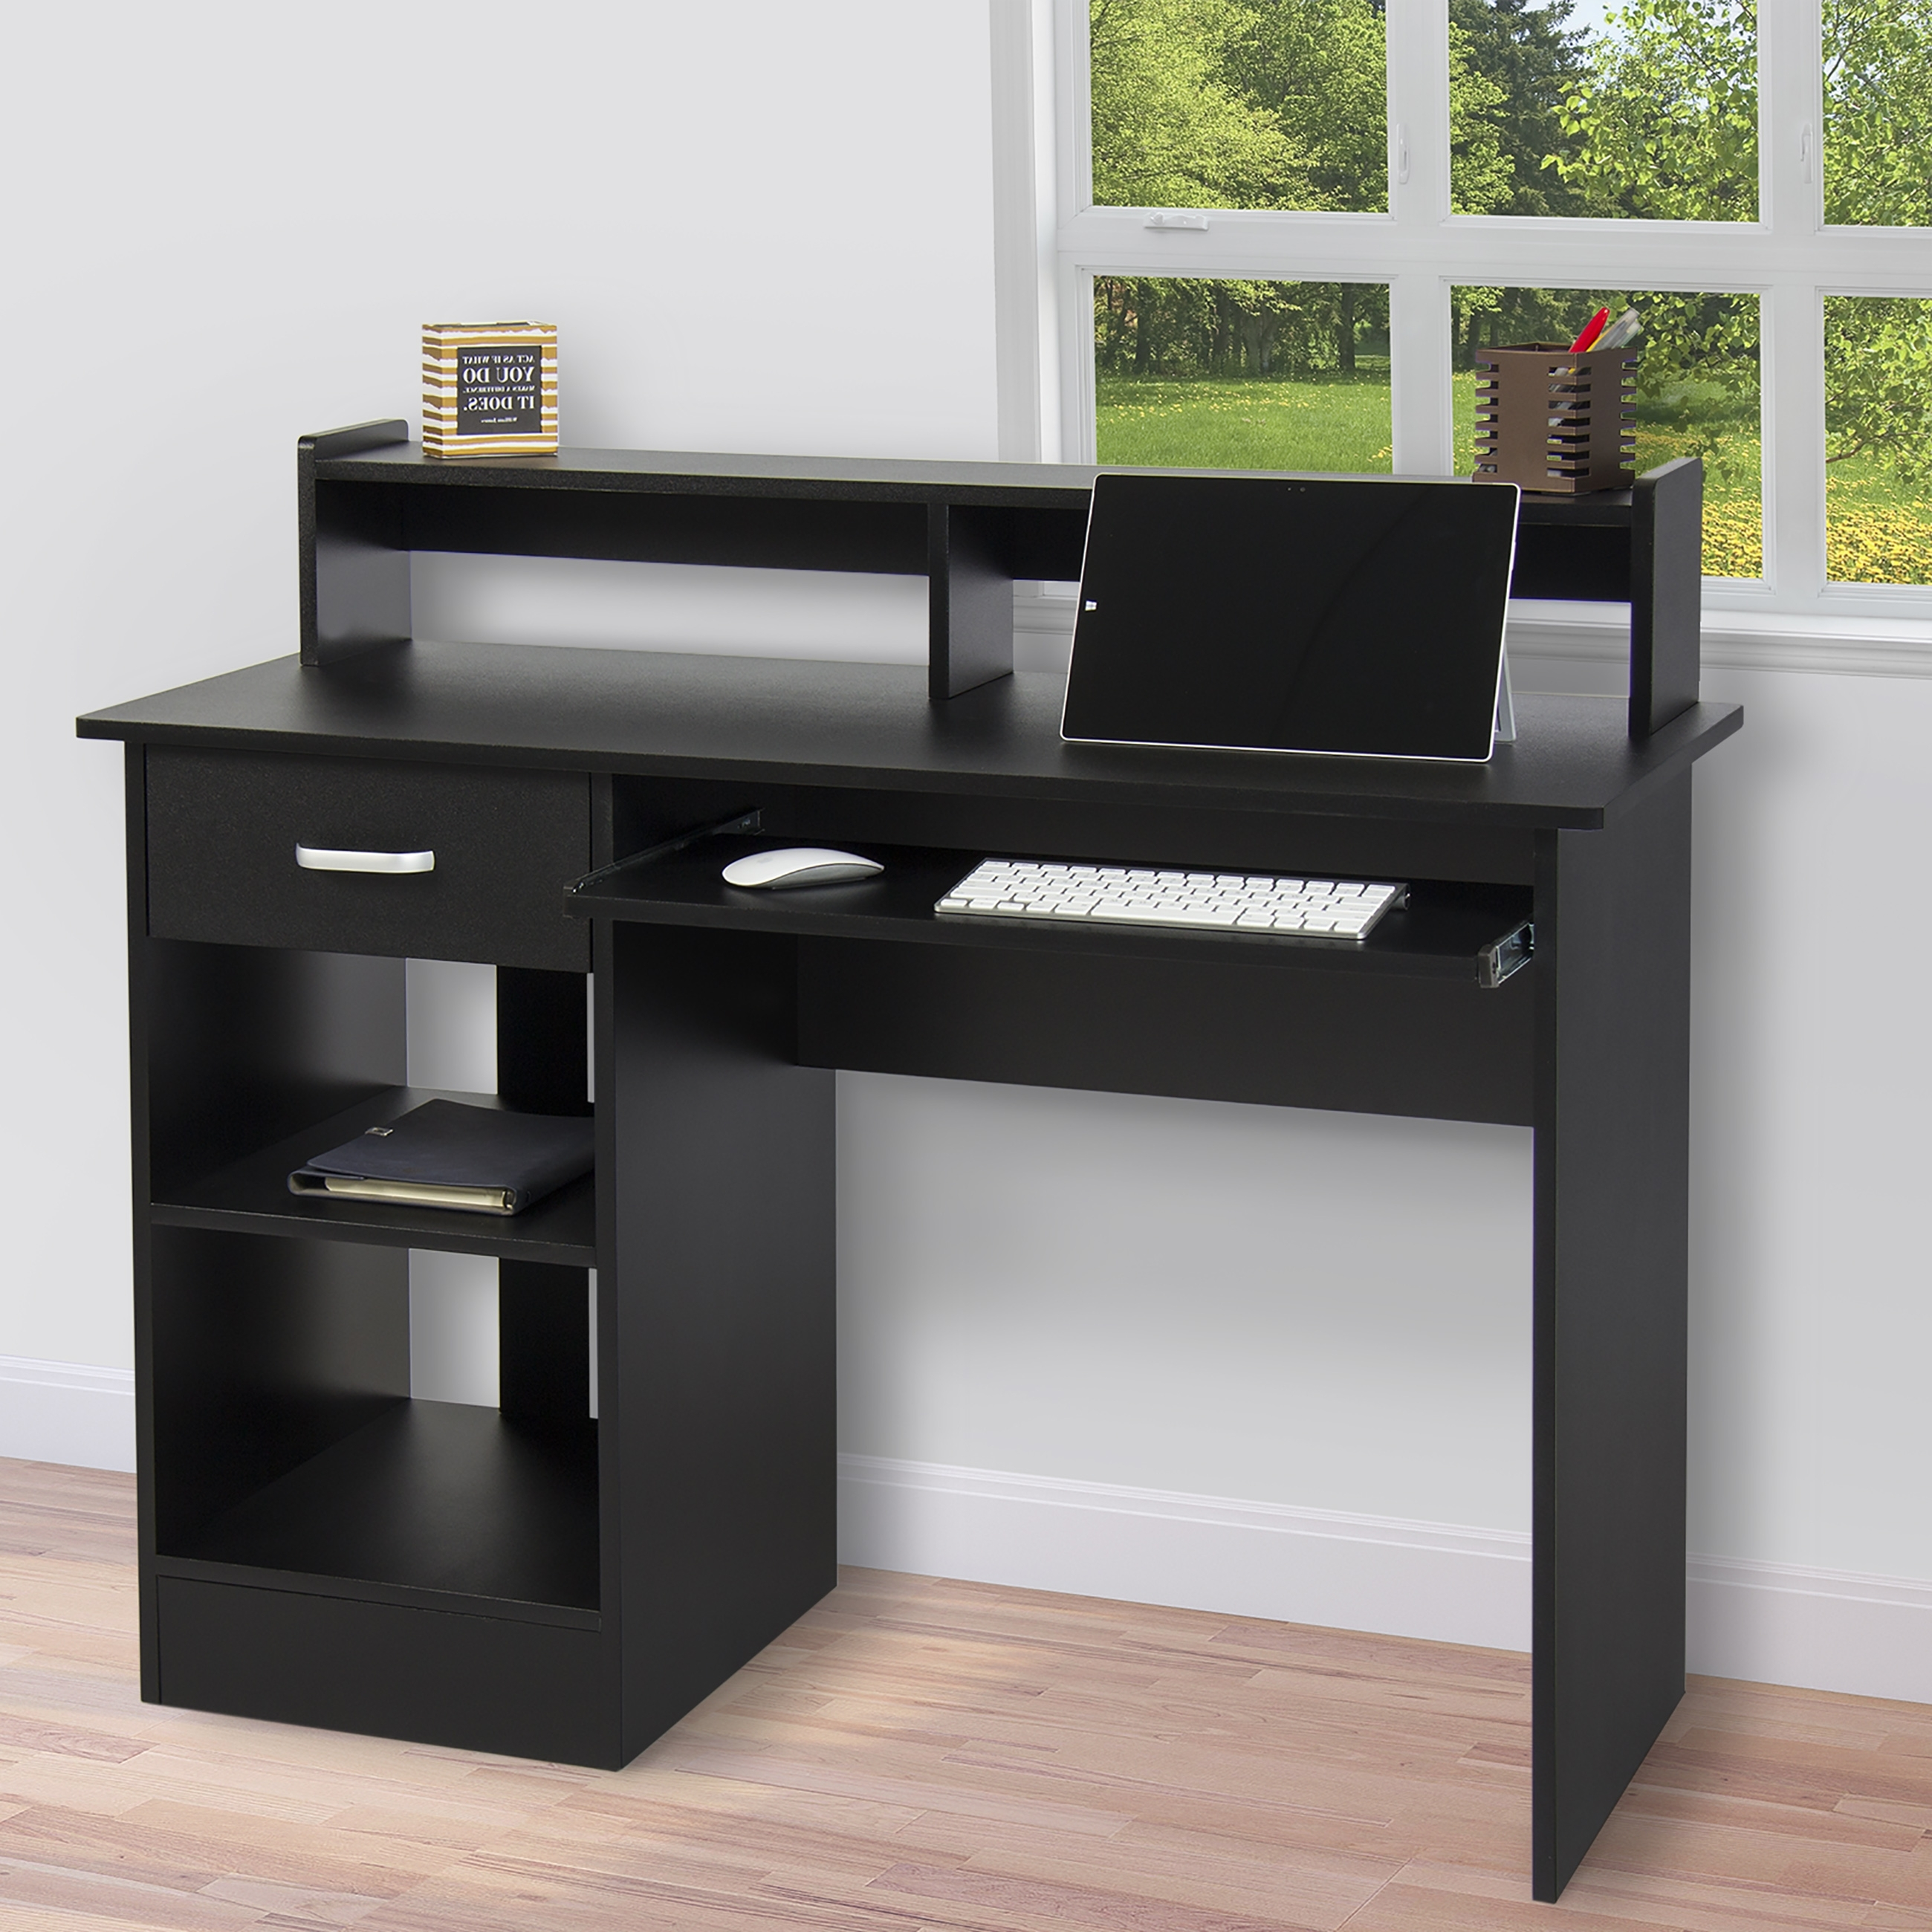 Rakuten: Best Choice Products Computer Desk Inside Computer Desks For Home (View 4 of 20)